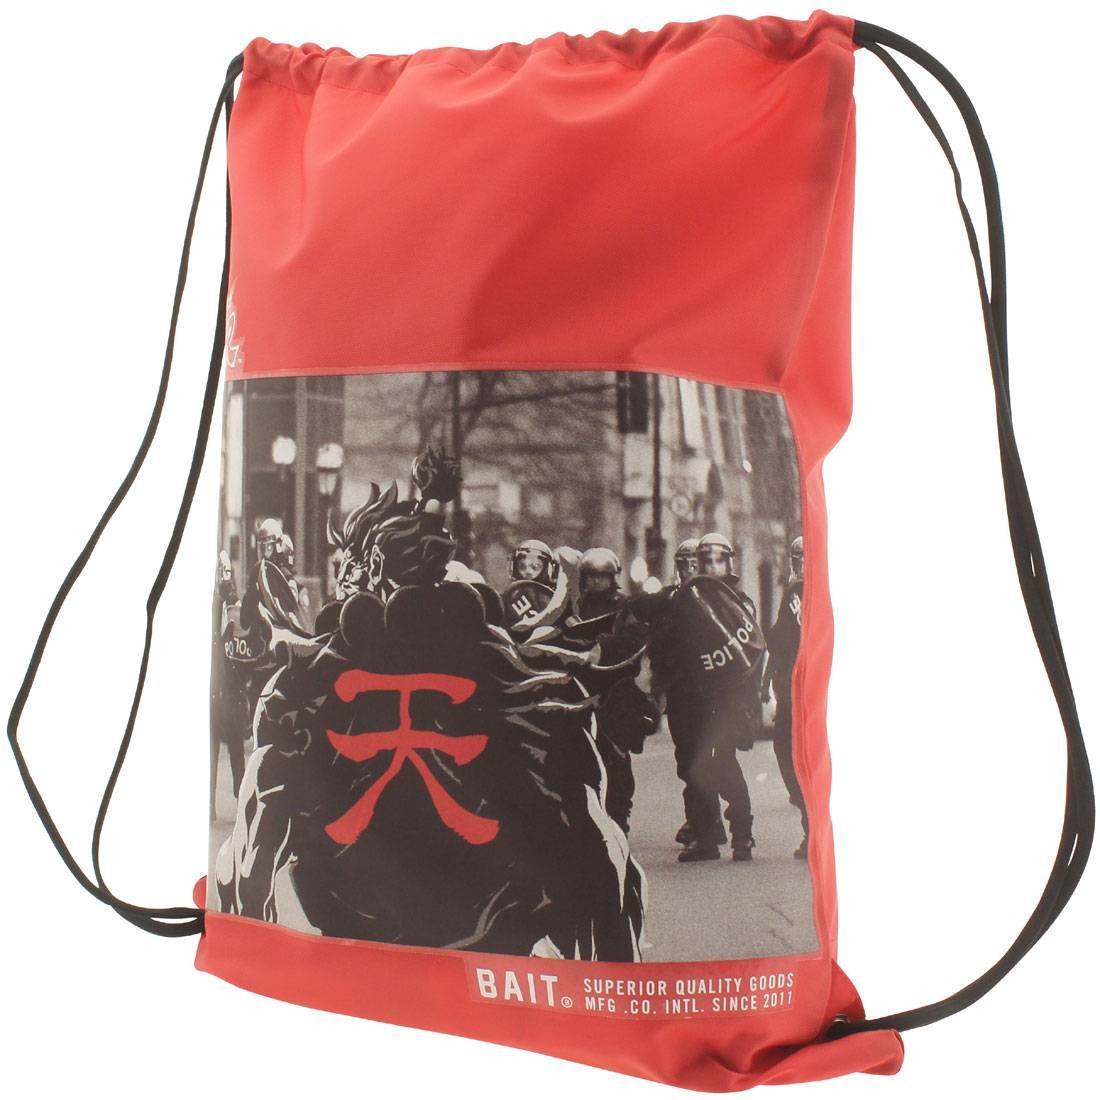 BAIT x Street Fighter Akuma SDCC Exclusive Sachet Bag (red)